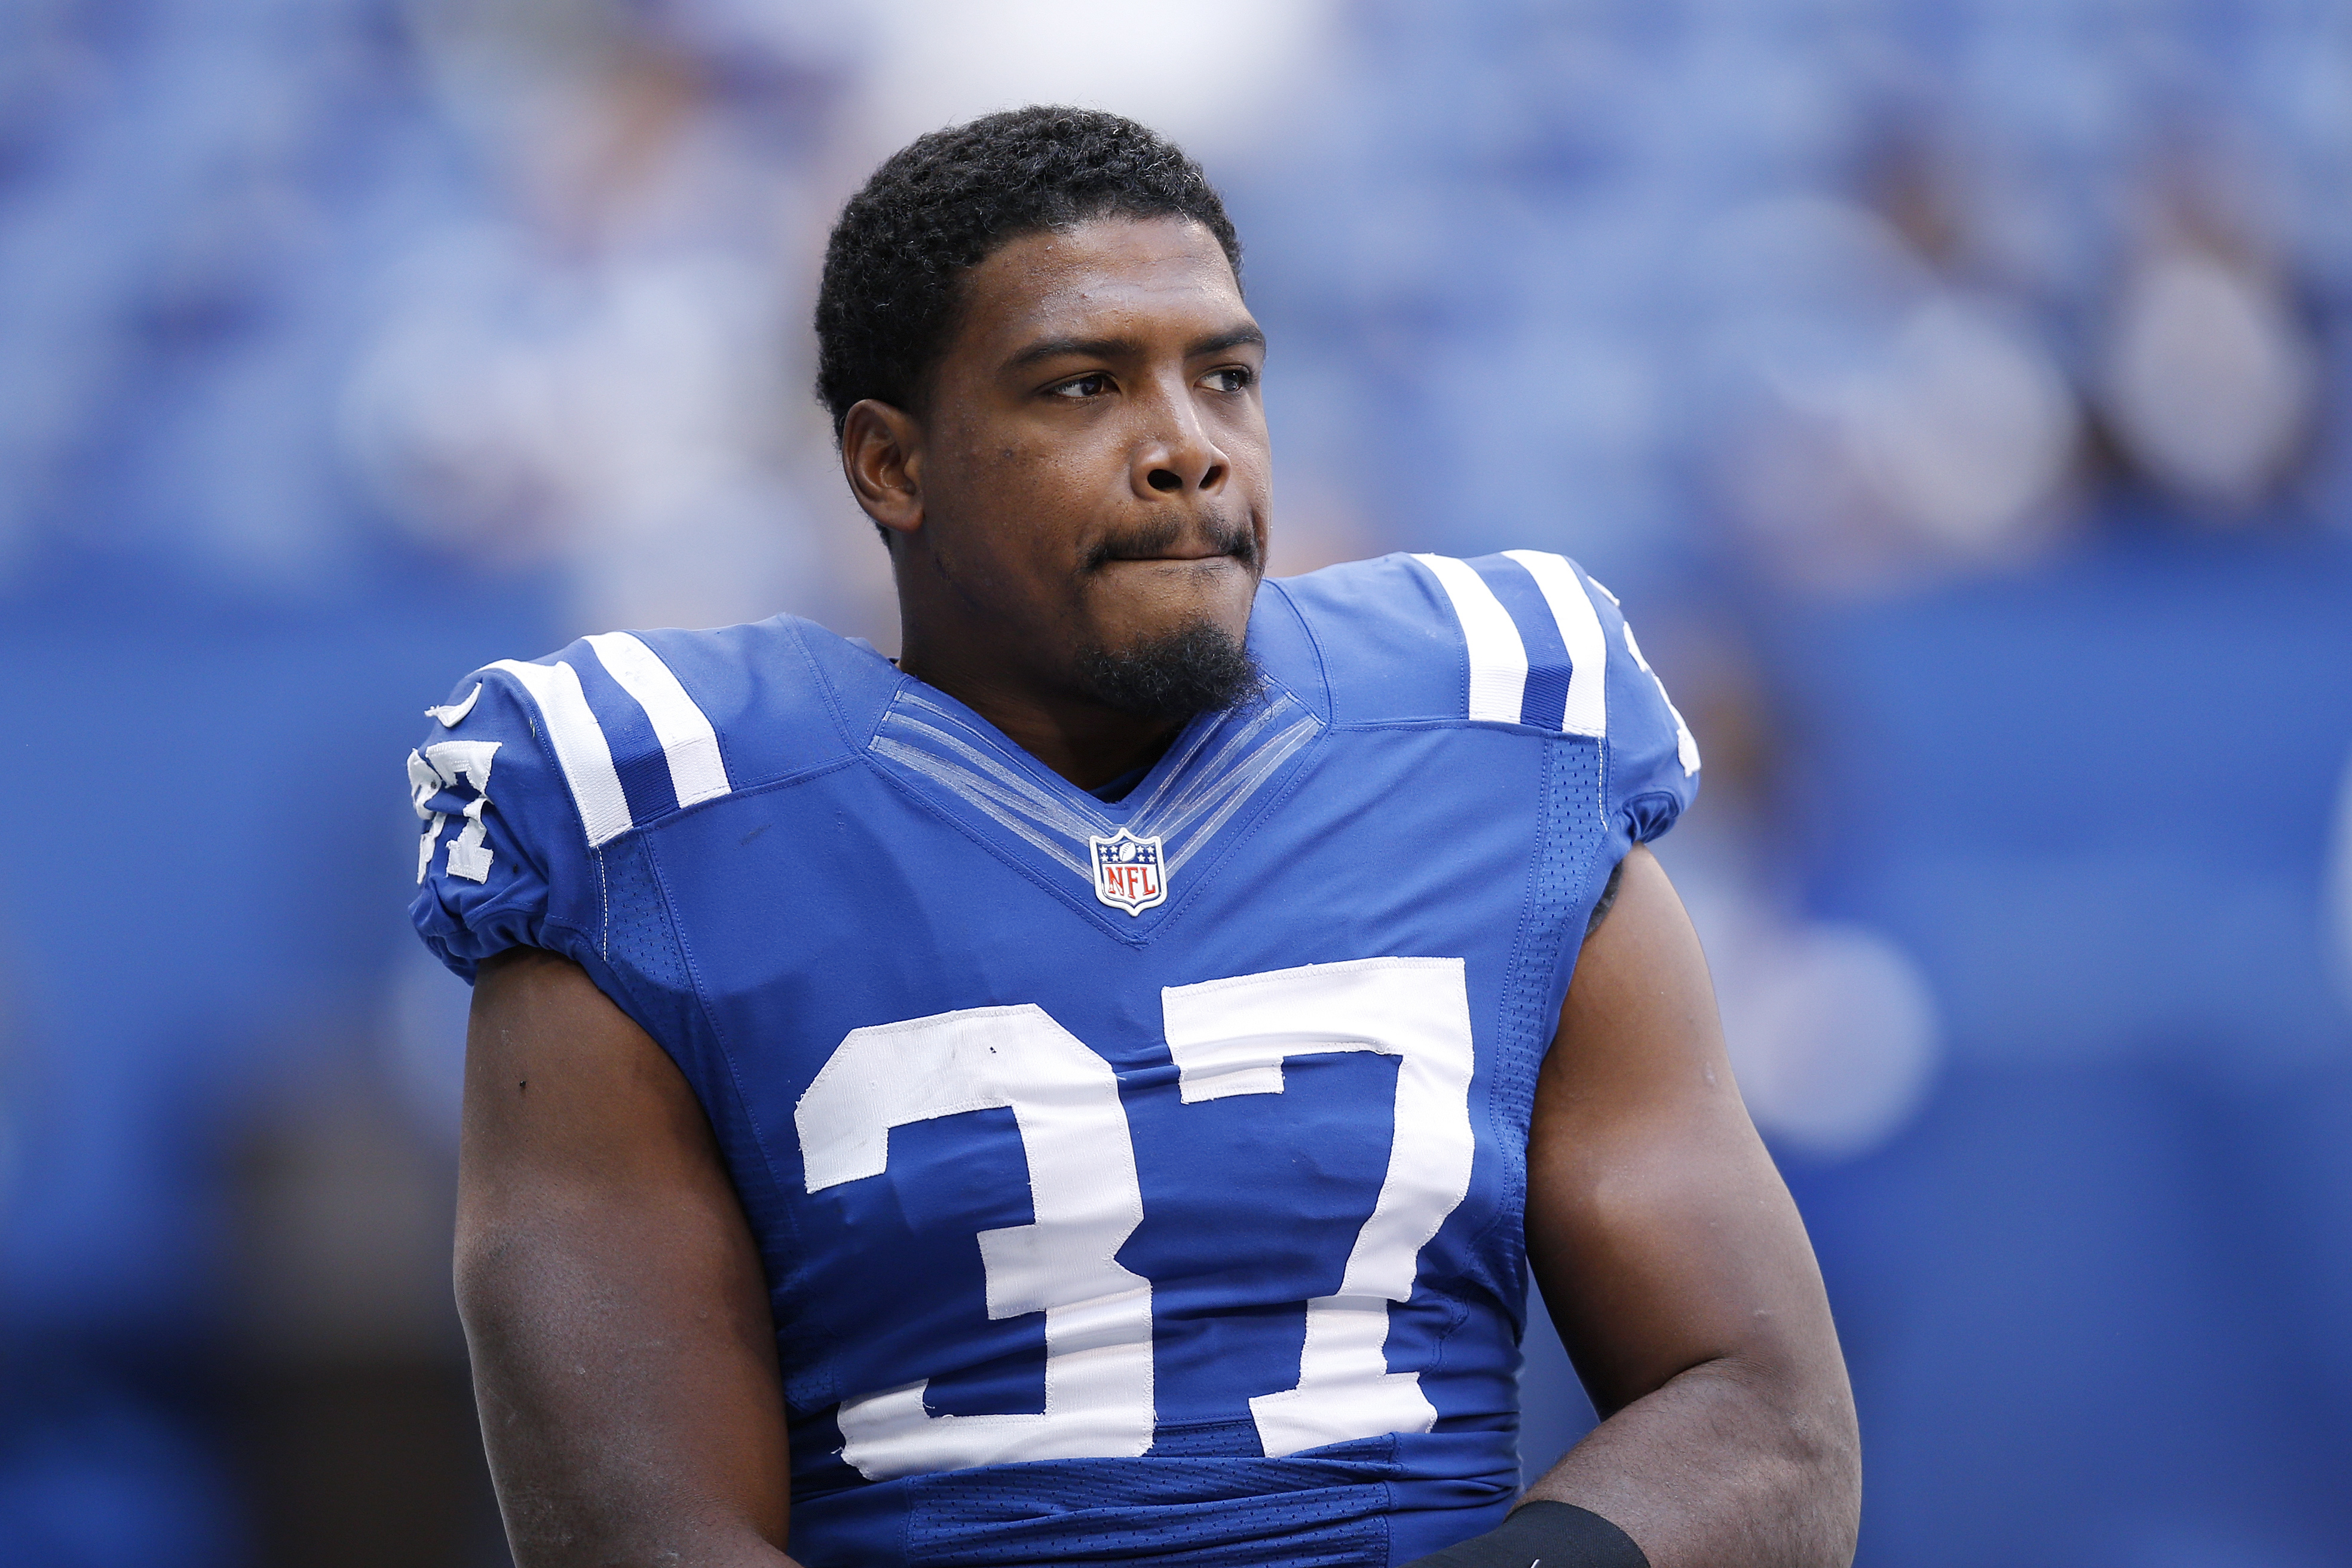 Zurlon Tipton of the Indianapolis Colts looks on during a game against the New Orleans Saints at Lucas Oil Stadium in Indianapolis on Oct. 25, 2015